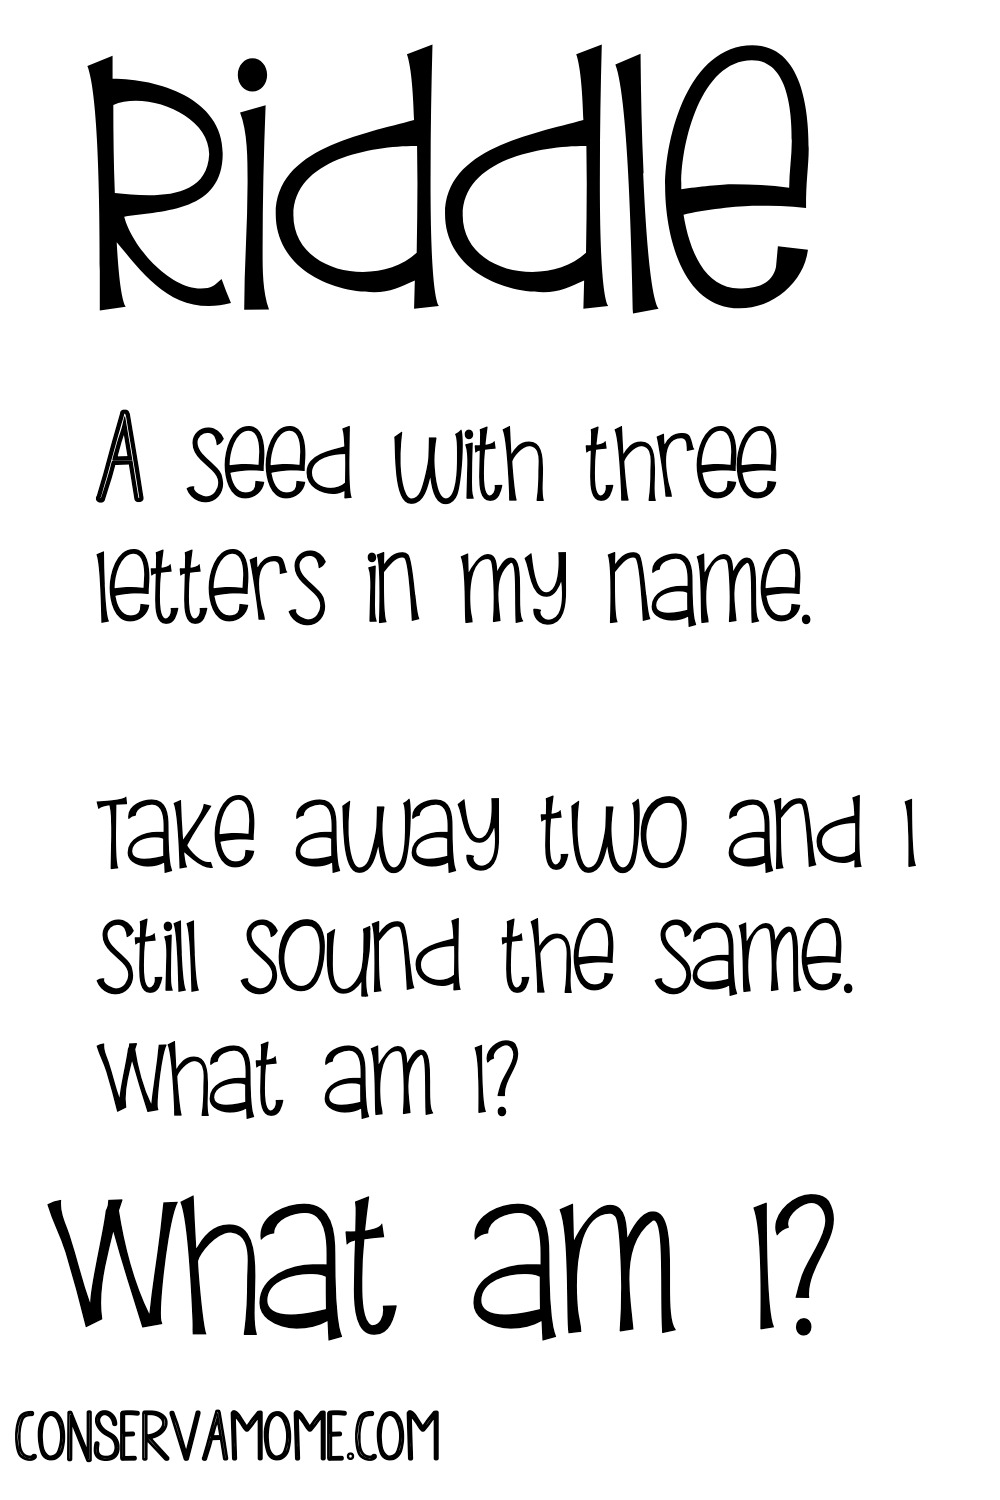 What I riddle